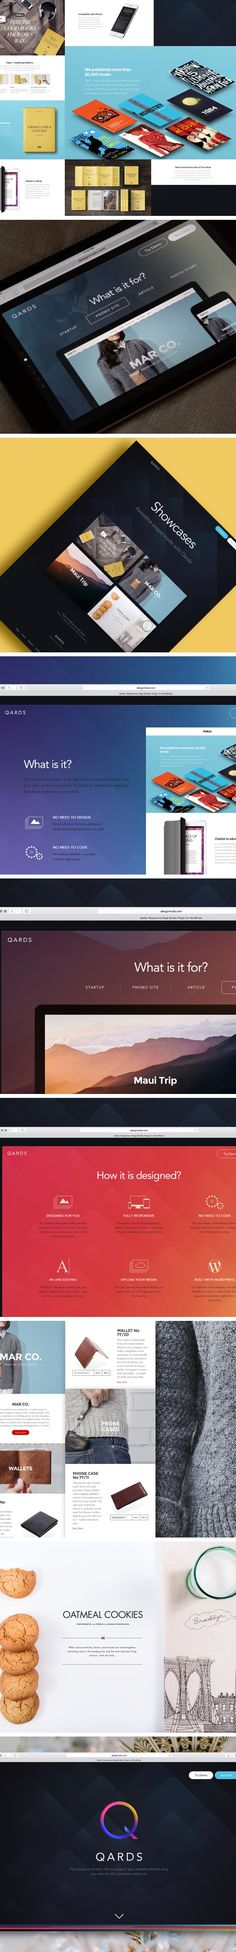 Qards - it's our brand new tool which build to help you to create a landing page or multi-page website with no coding or design skills. You focus on content, the purpose of your website and the story you want to tell. Leave the rest to us. You'll be surpr…